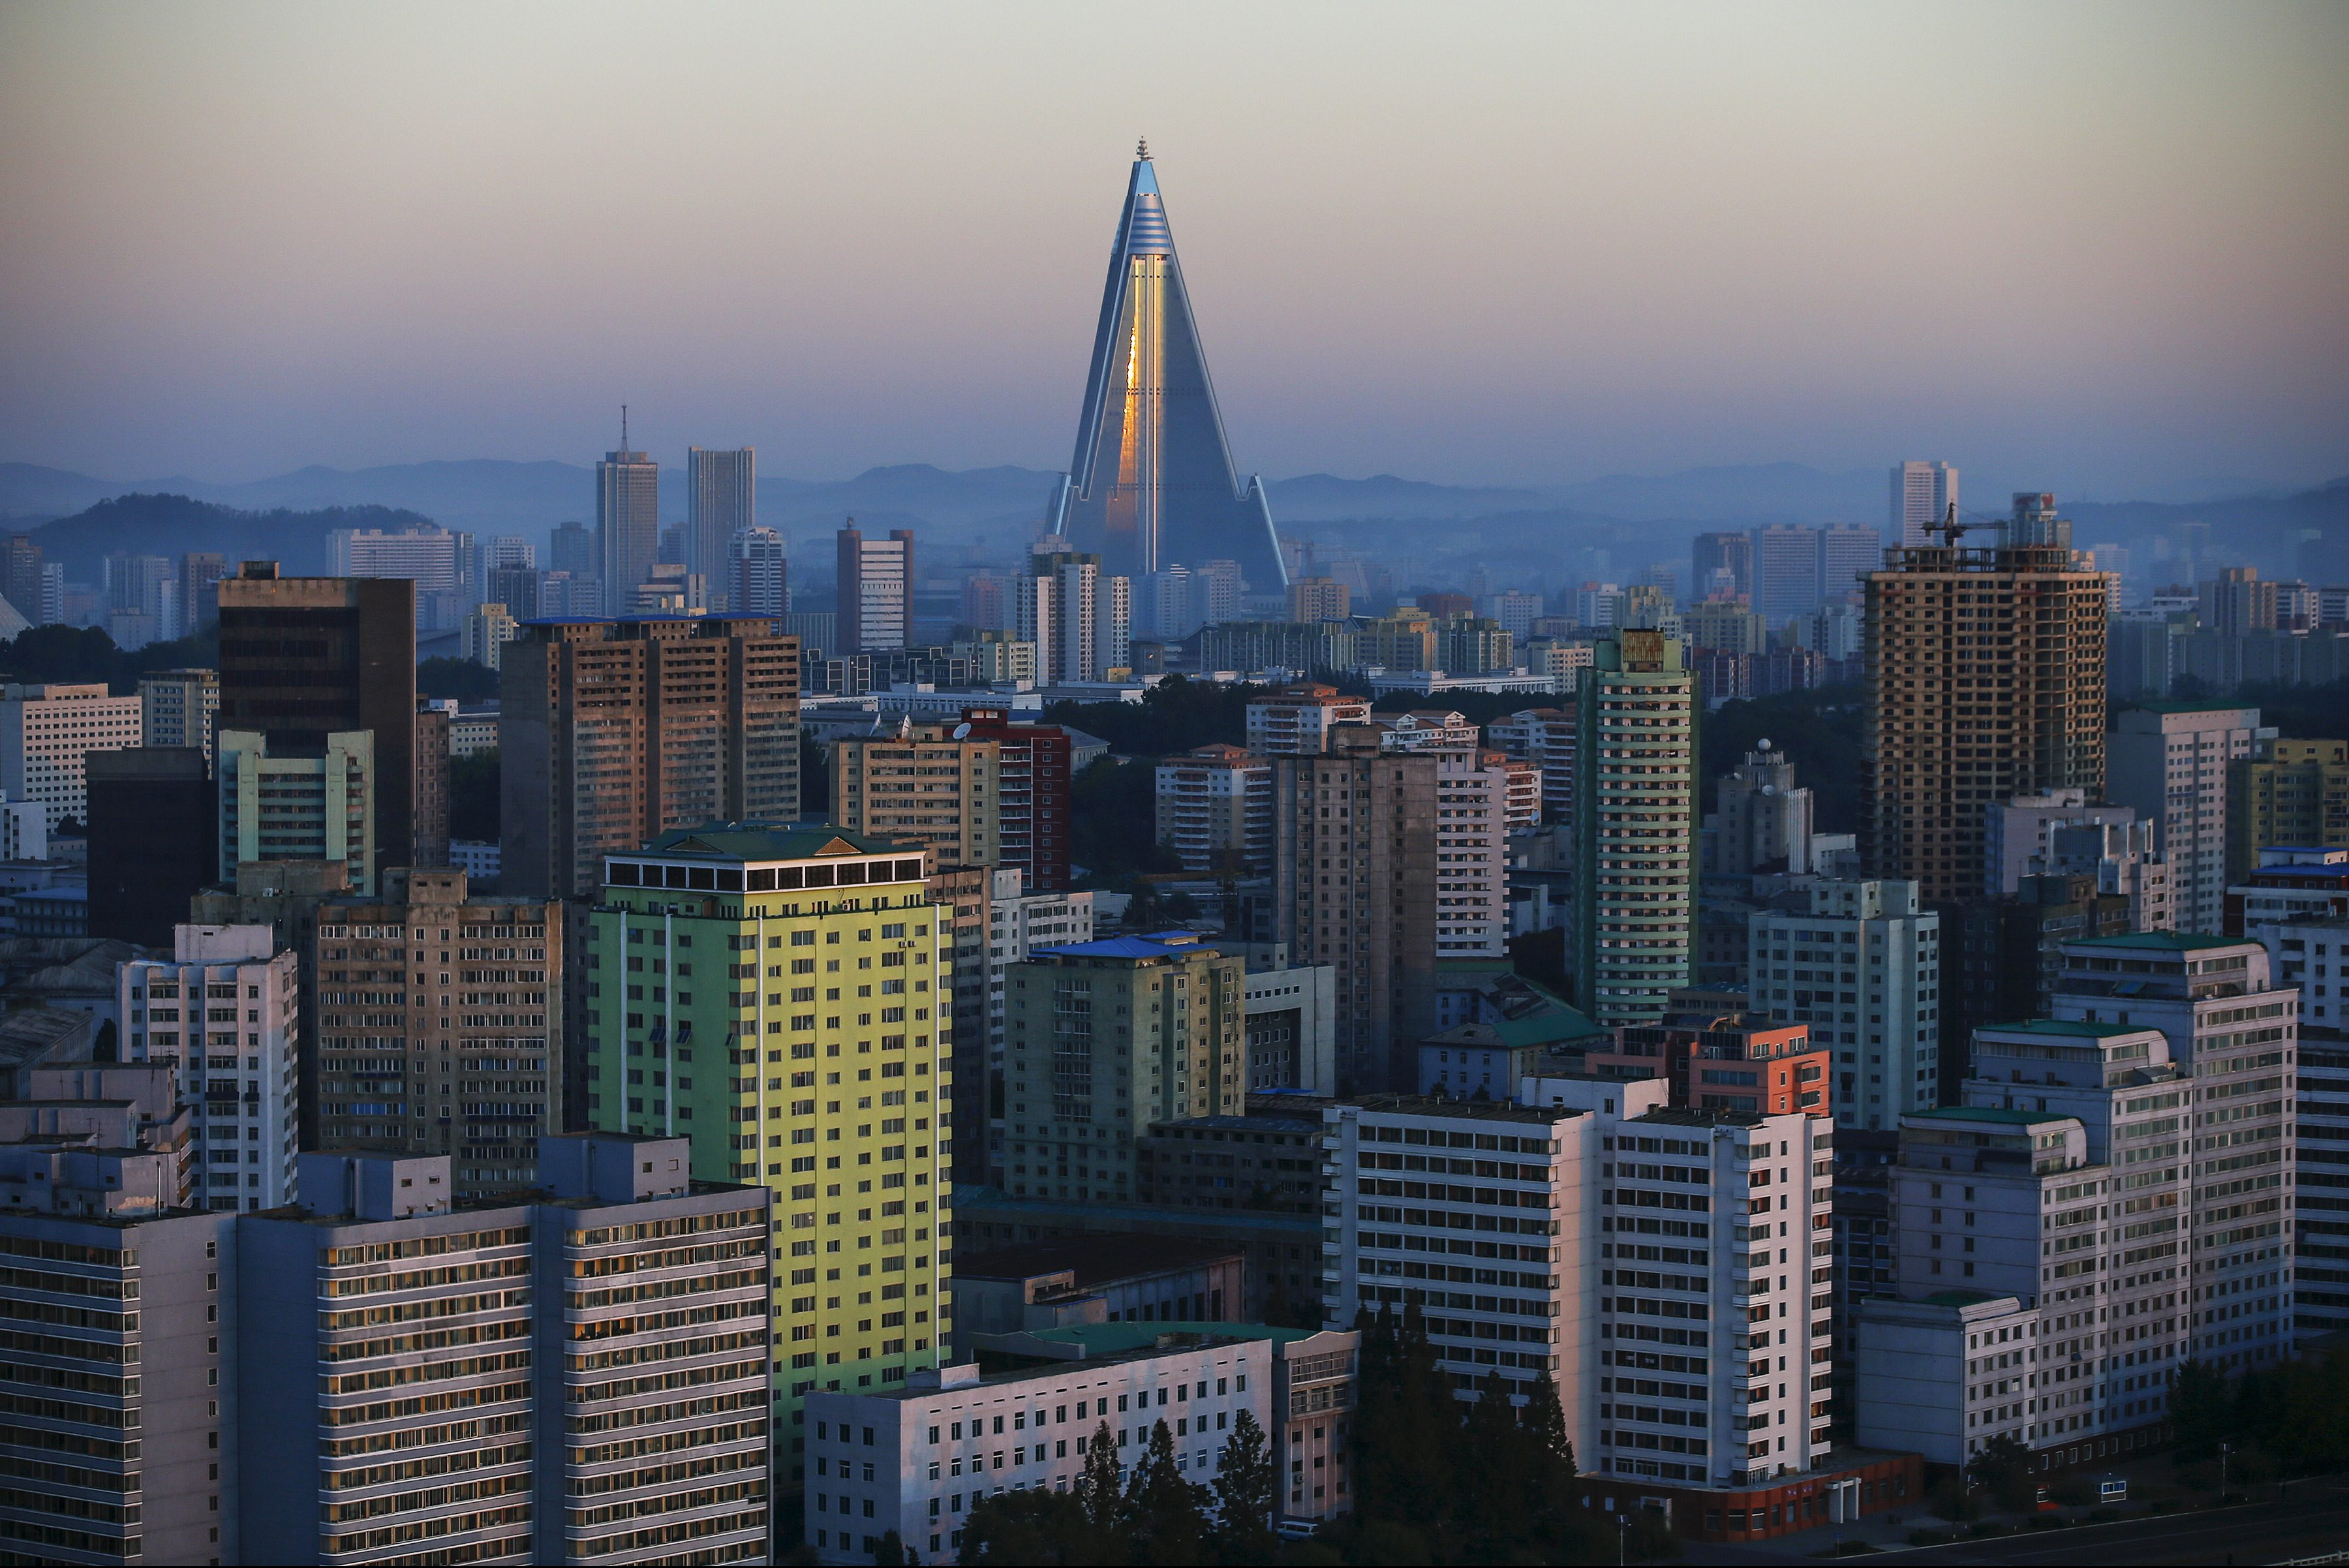 The 105-storey Ryugyong Hotel, the highest building under construction in North Korea, is seen behind residential buildings in Pyongyang, North Korea, early October 9, 2015. North Korea is getting ready to celebrate the 70th anniversary of the founding of its ruling Workers' Party of Korea on October 10.